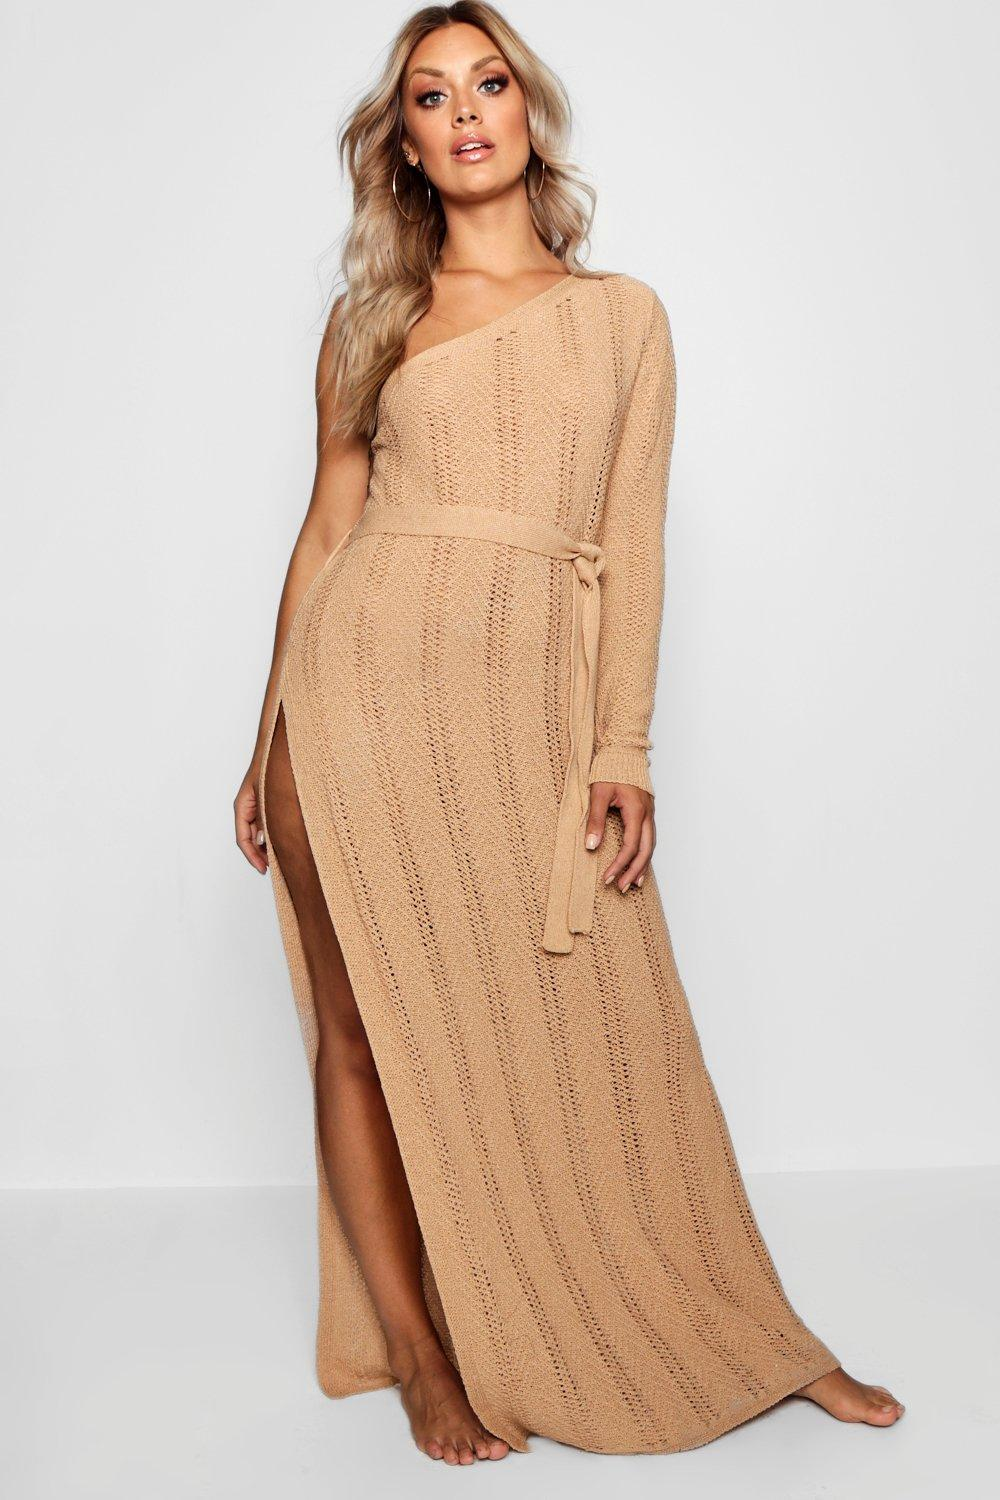 49170348af14 Boohoo - Multicolor Plus One Shoulder Crochet Beach Dress - Lyst. View  fullscreen